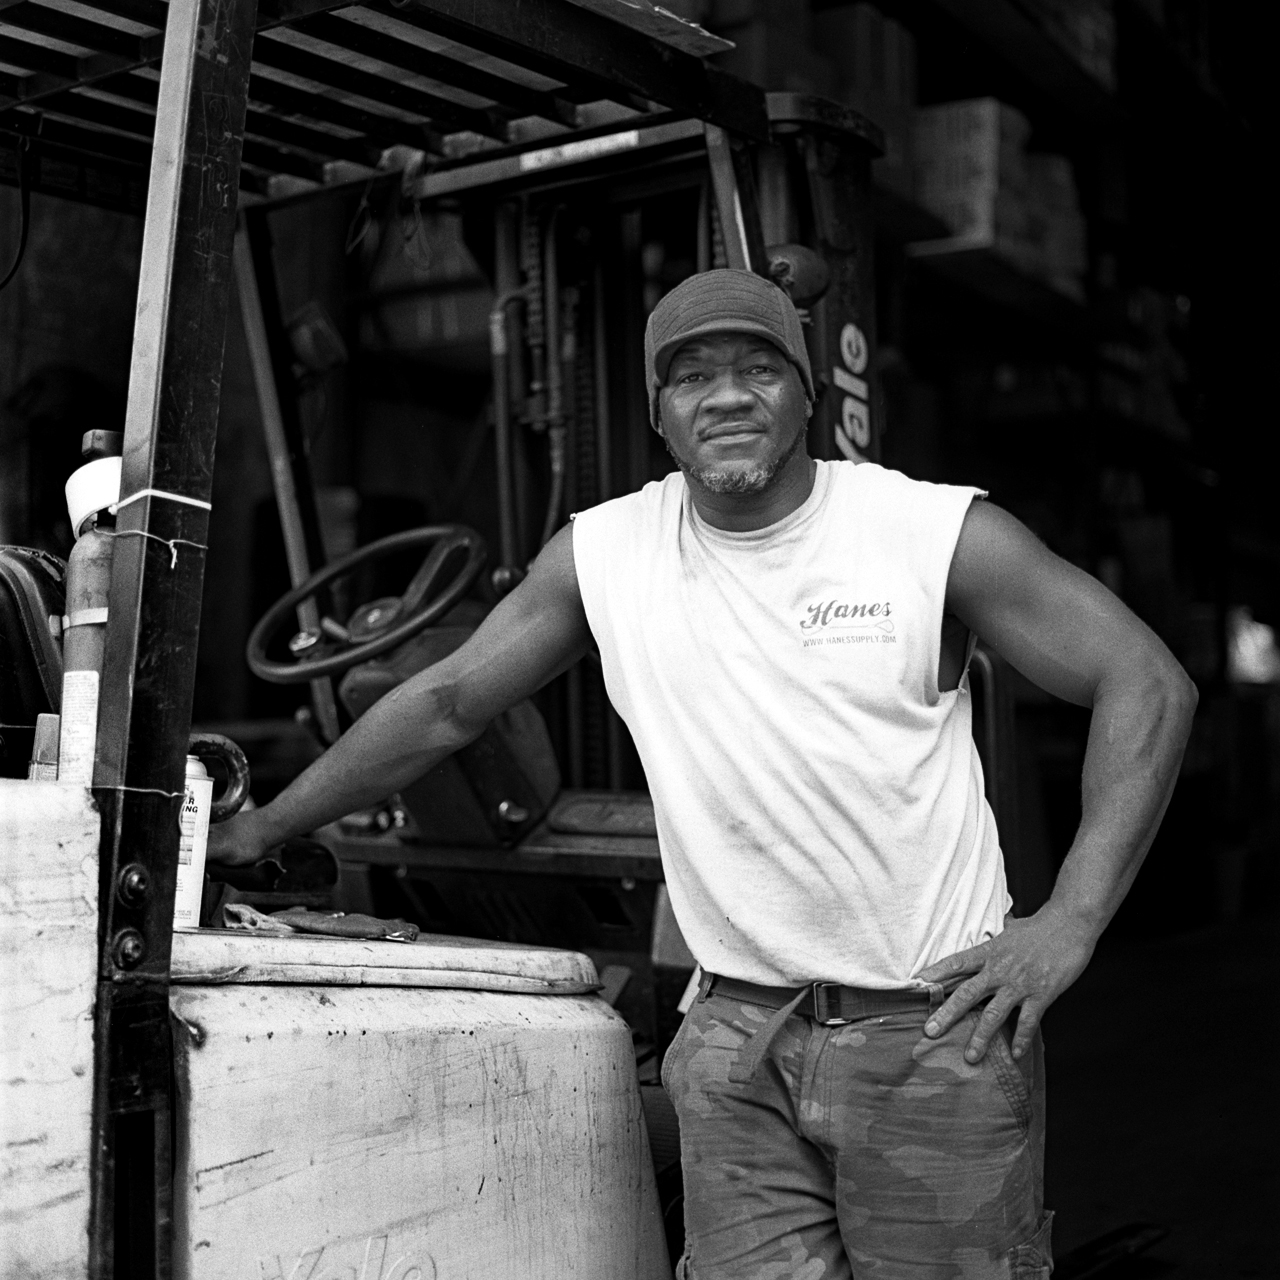 Robert, warehouse manager for Reinforcing Supply, poses beside his forklift. Previous to his position at Reinforcing Supply, Robert was a photographer for Russell Simmons' Def Jam and a printer at a photo lab in Manhattan. A makeshift memorial for Thomas R. Dolphin was put up near the intersection of Meeker Avenue and Gardner Avenue in Greenpoint, Brooklyn, N.Y. (Photo by Dakota Santiago/GroundTruth)